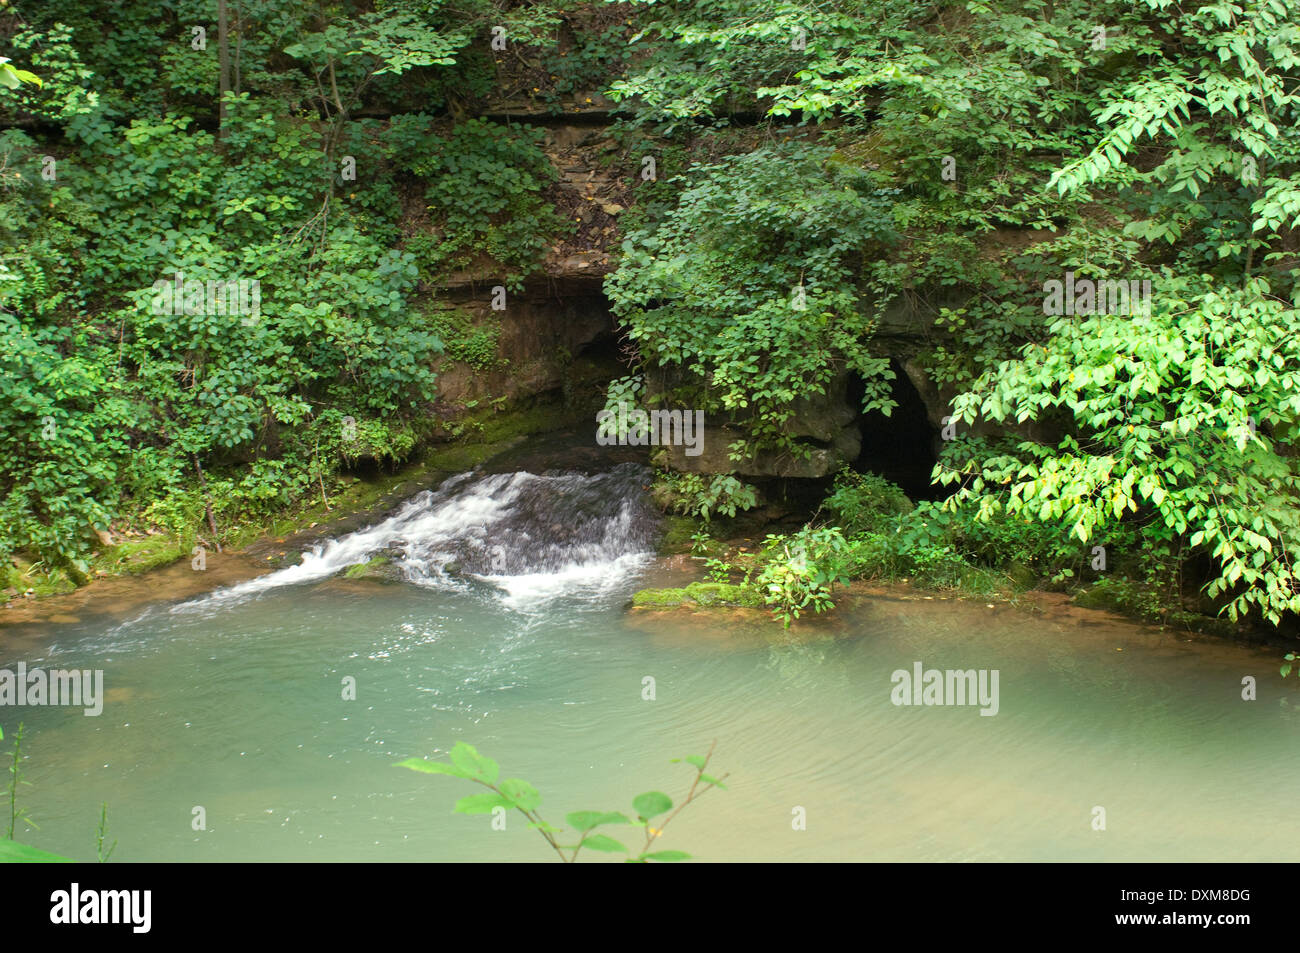 Natural Source Of Power Imágenes De Stock & Natural Source Of Power ...